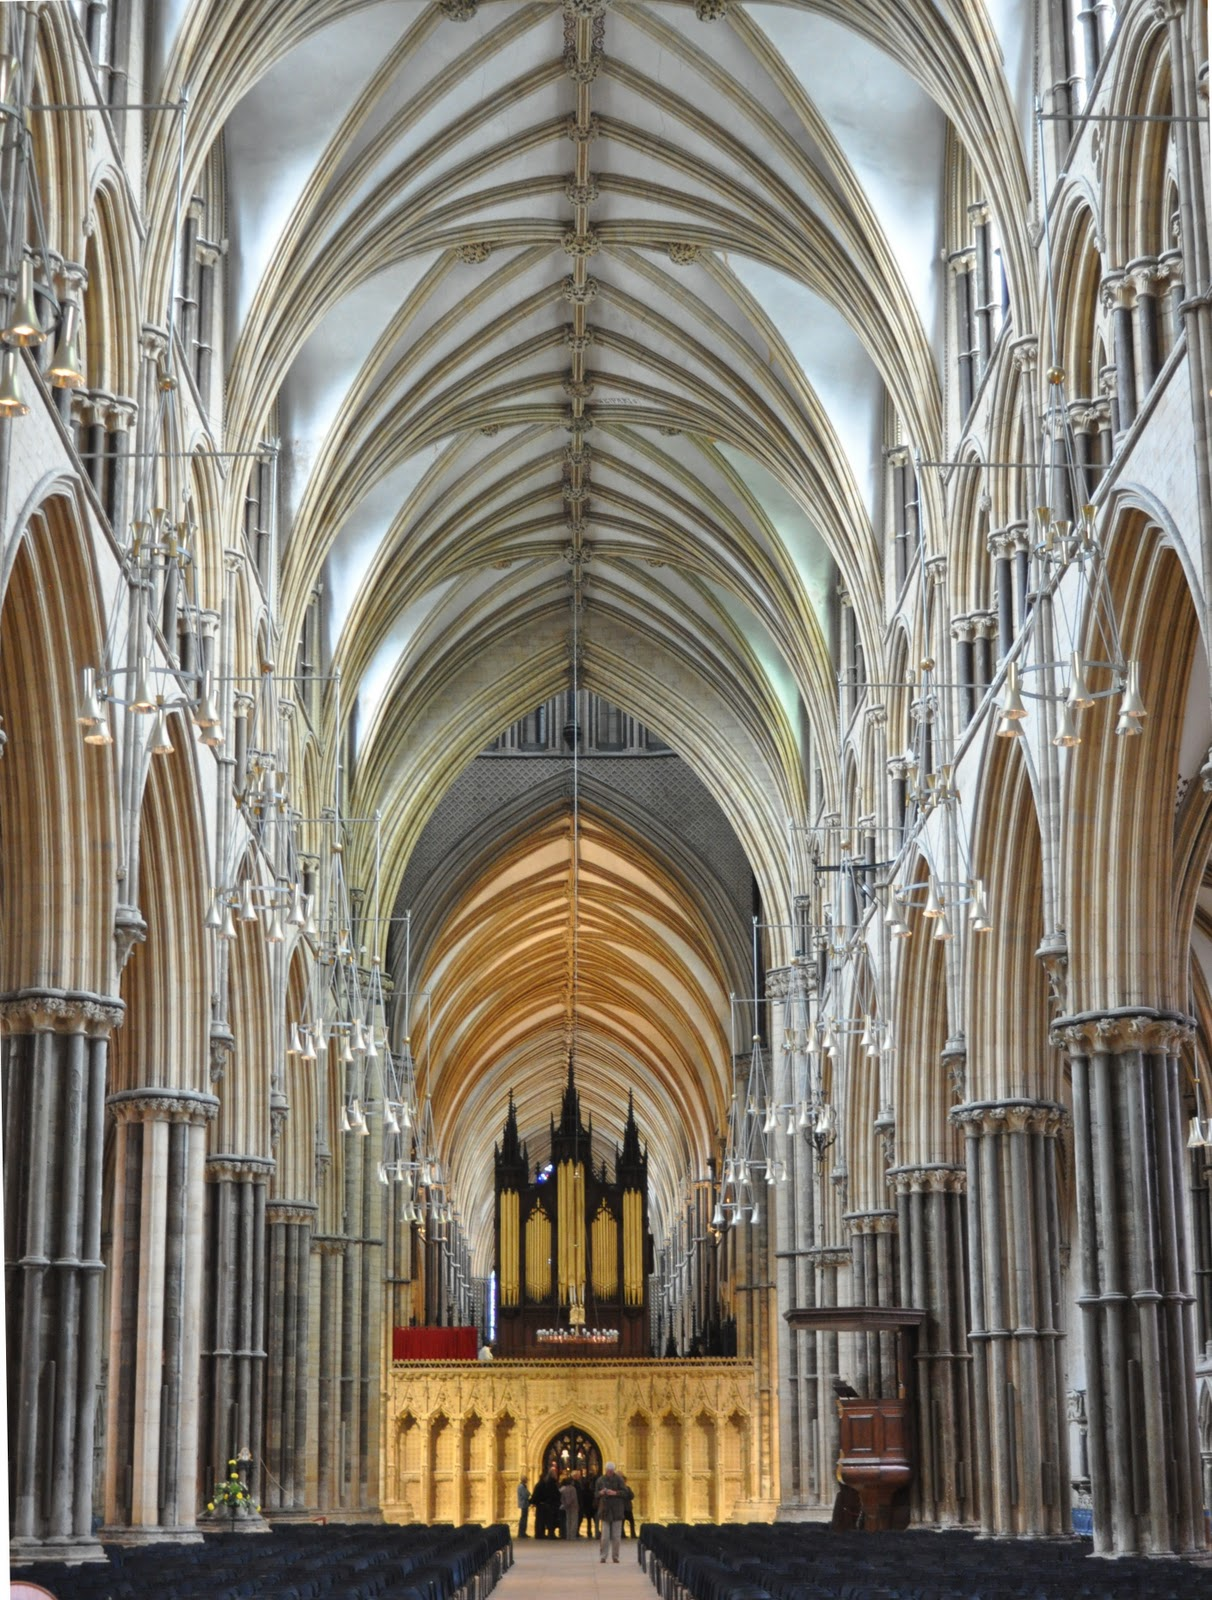 Pointed Arches Were Used To Support The Ceiling Above Them It Could Hold Much More Weight Than Simple Pillars